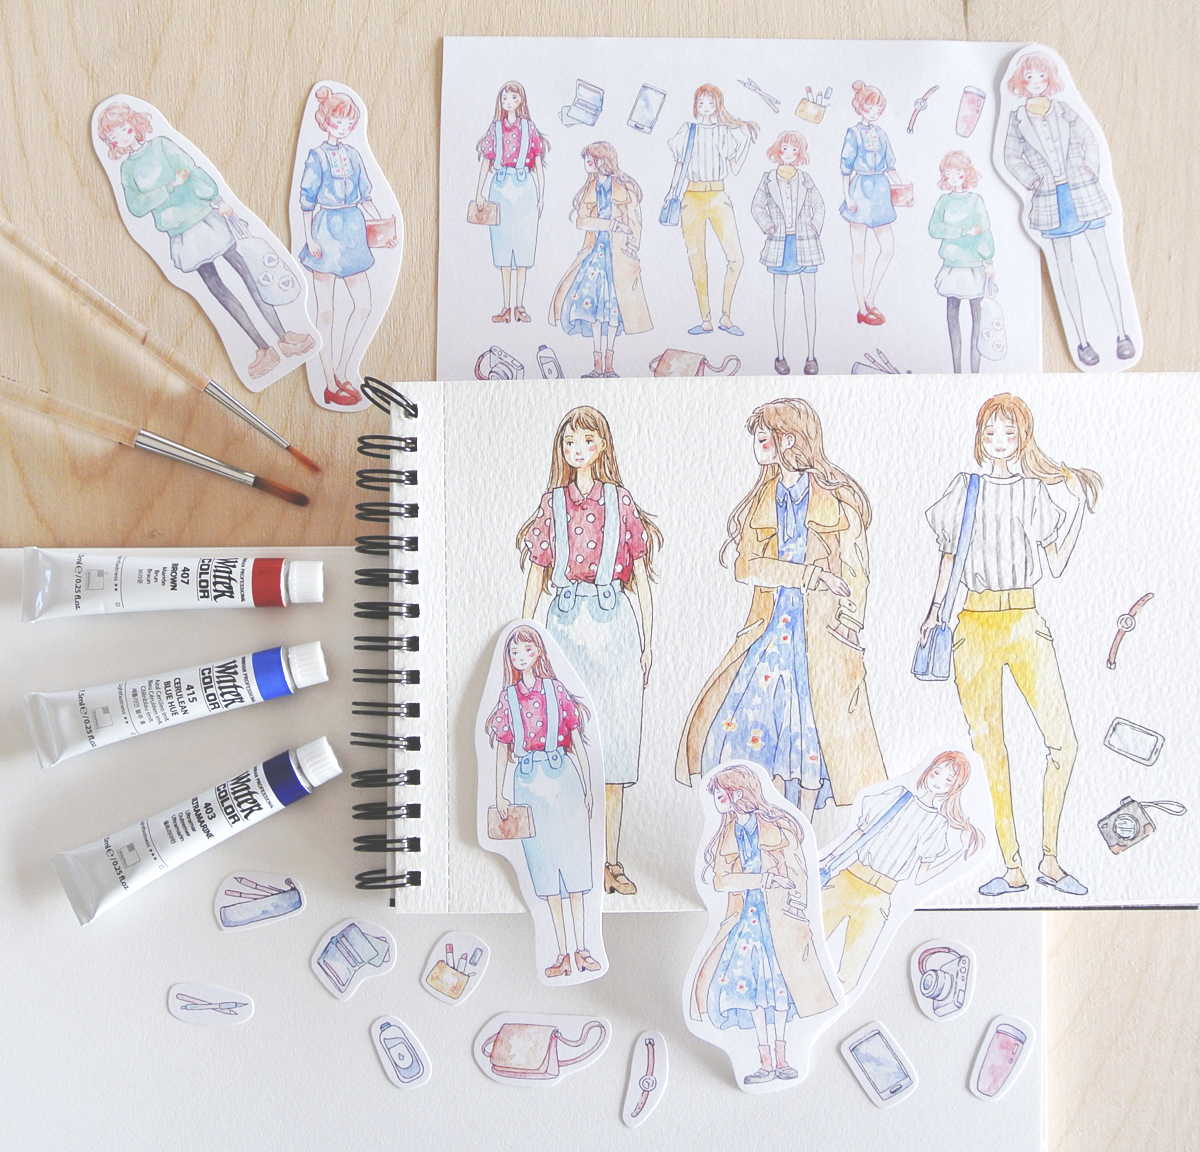 Girl stickers inspired by Korean dramas and fashion.